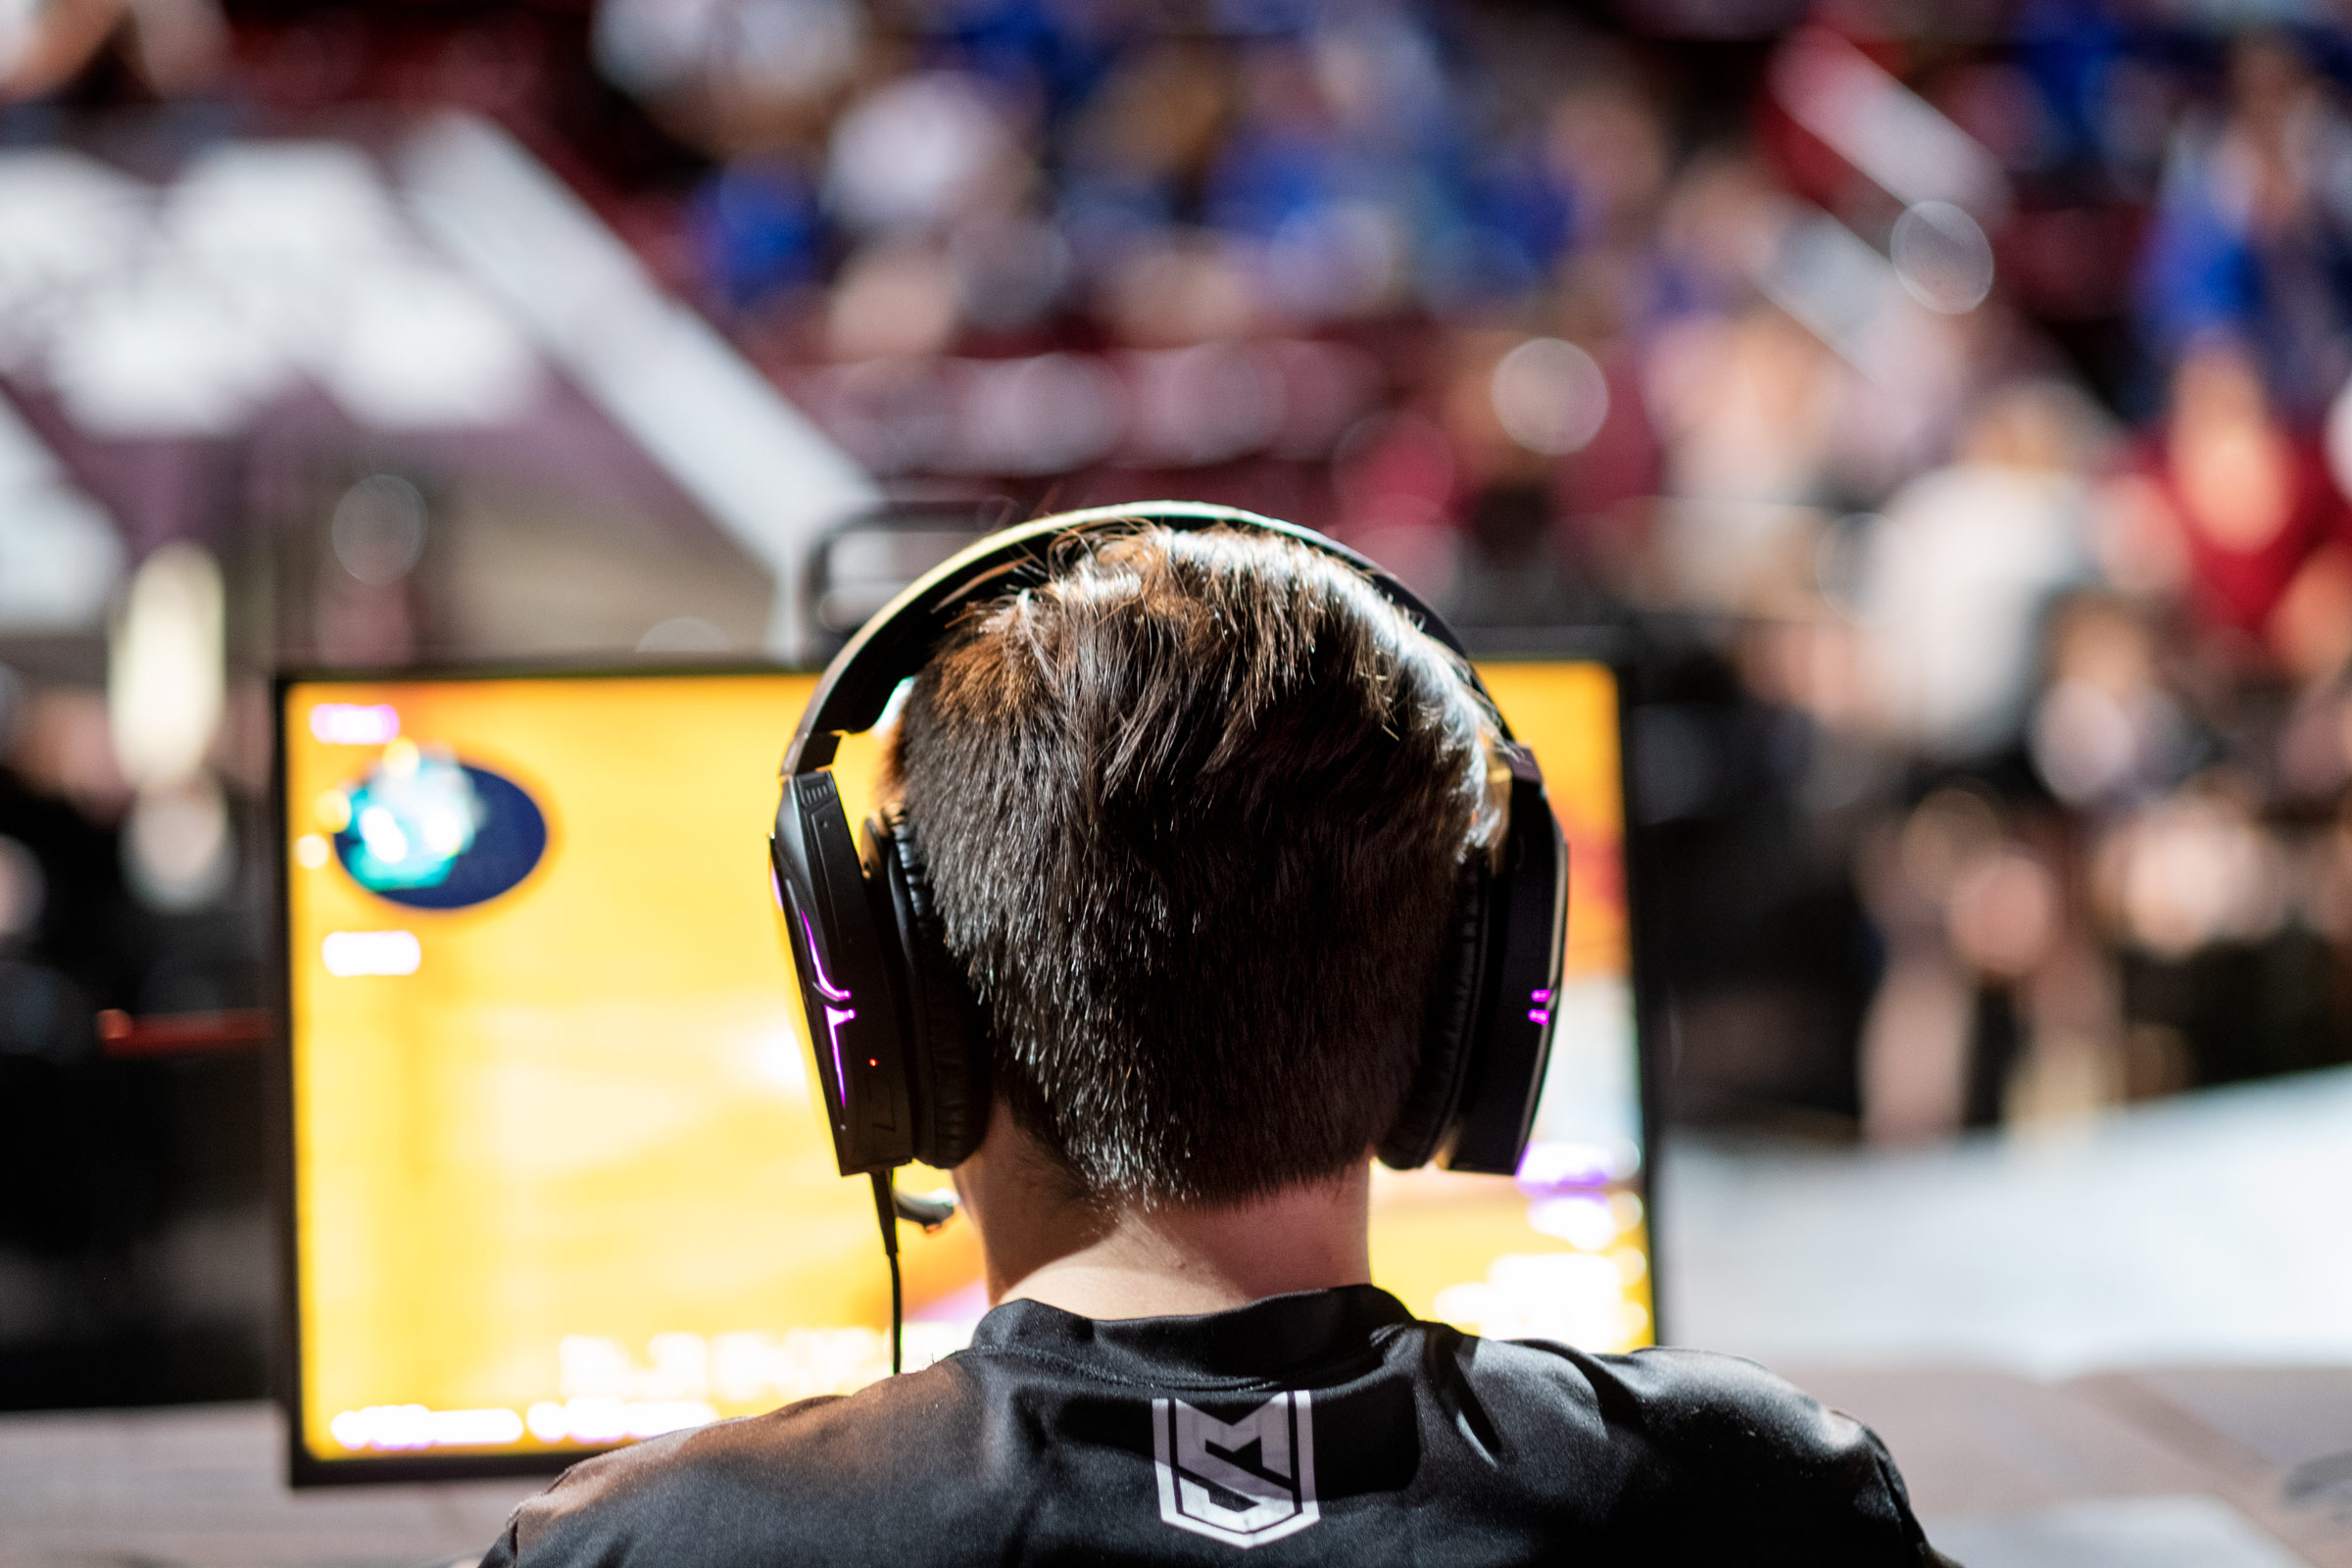 Wearing headphones and framed by the glow of a yellow computer screen, an MSU student eSports team member competes at the Hump.